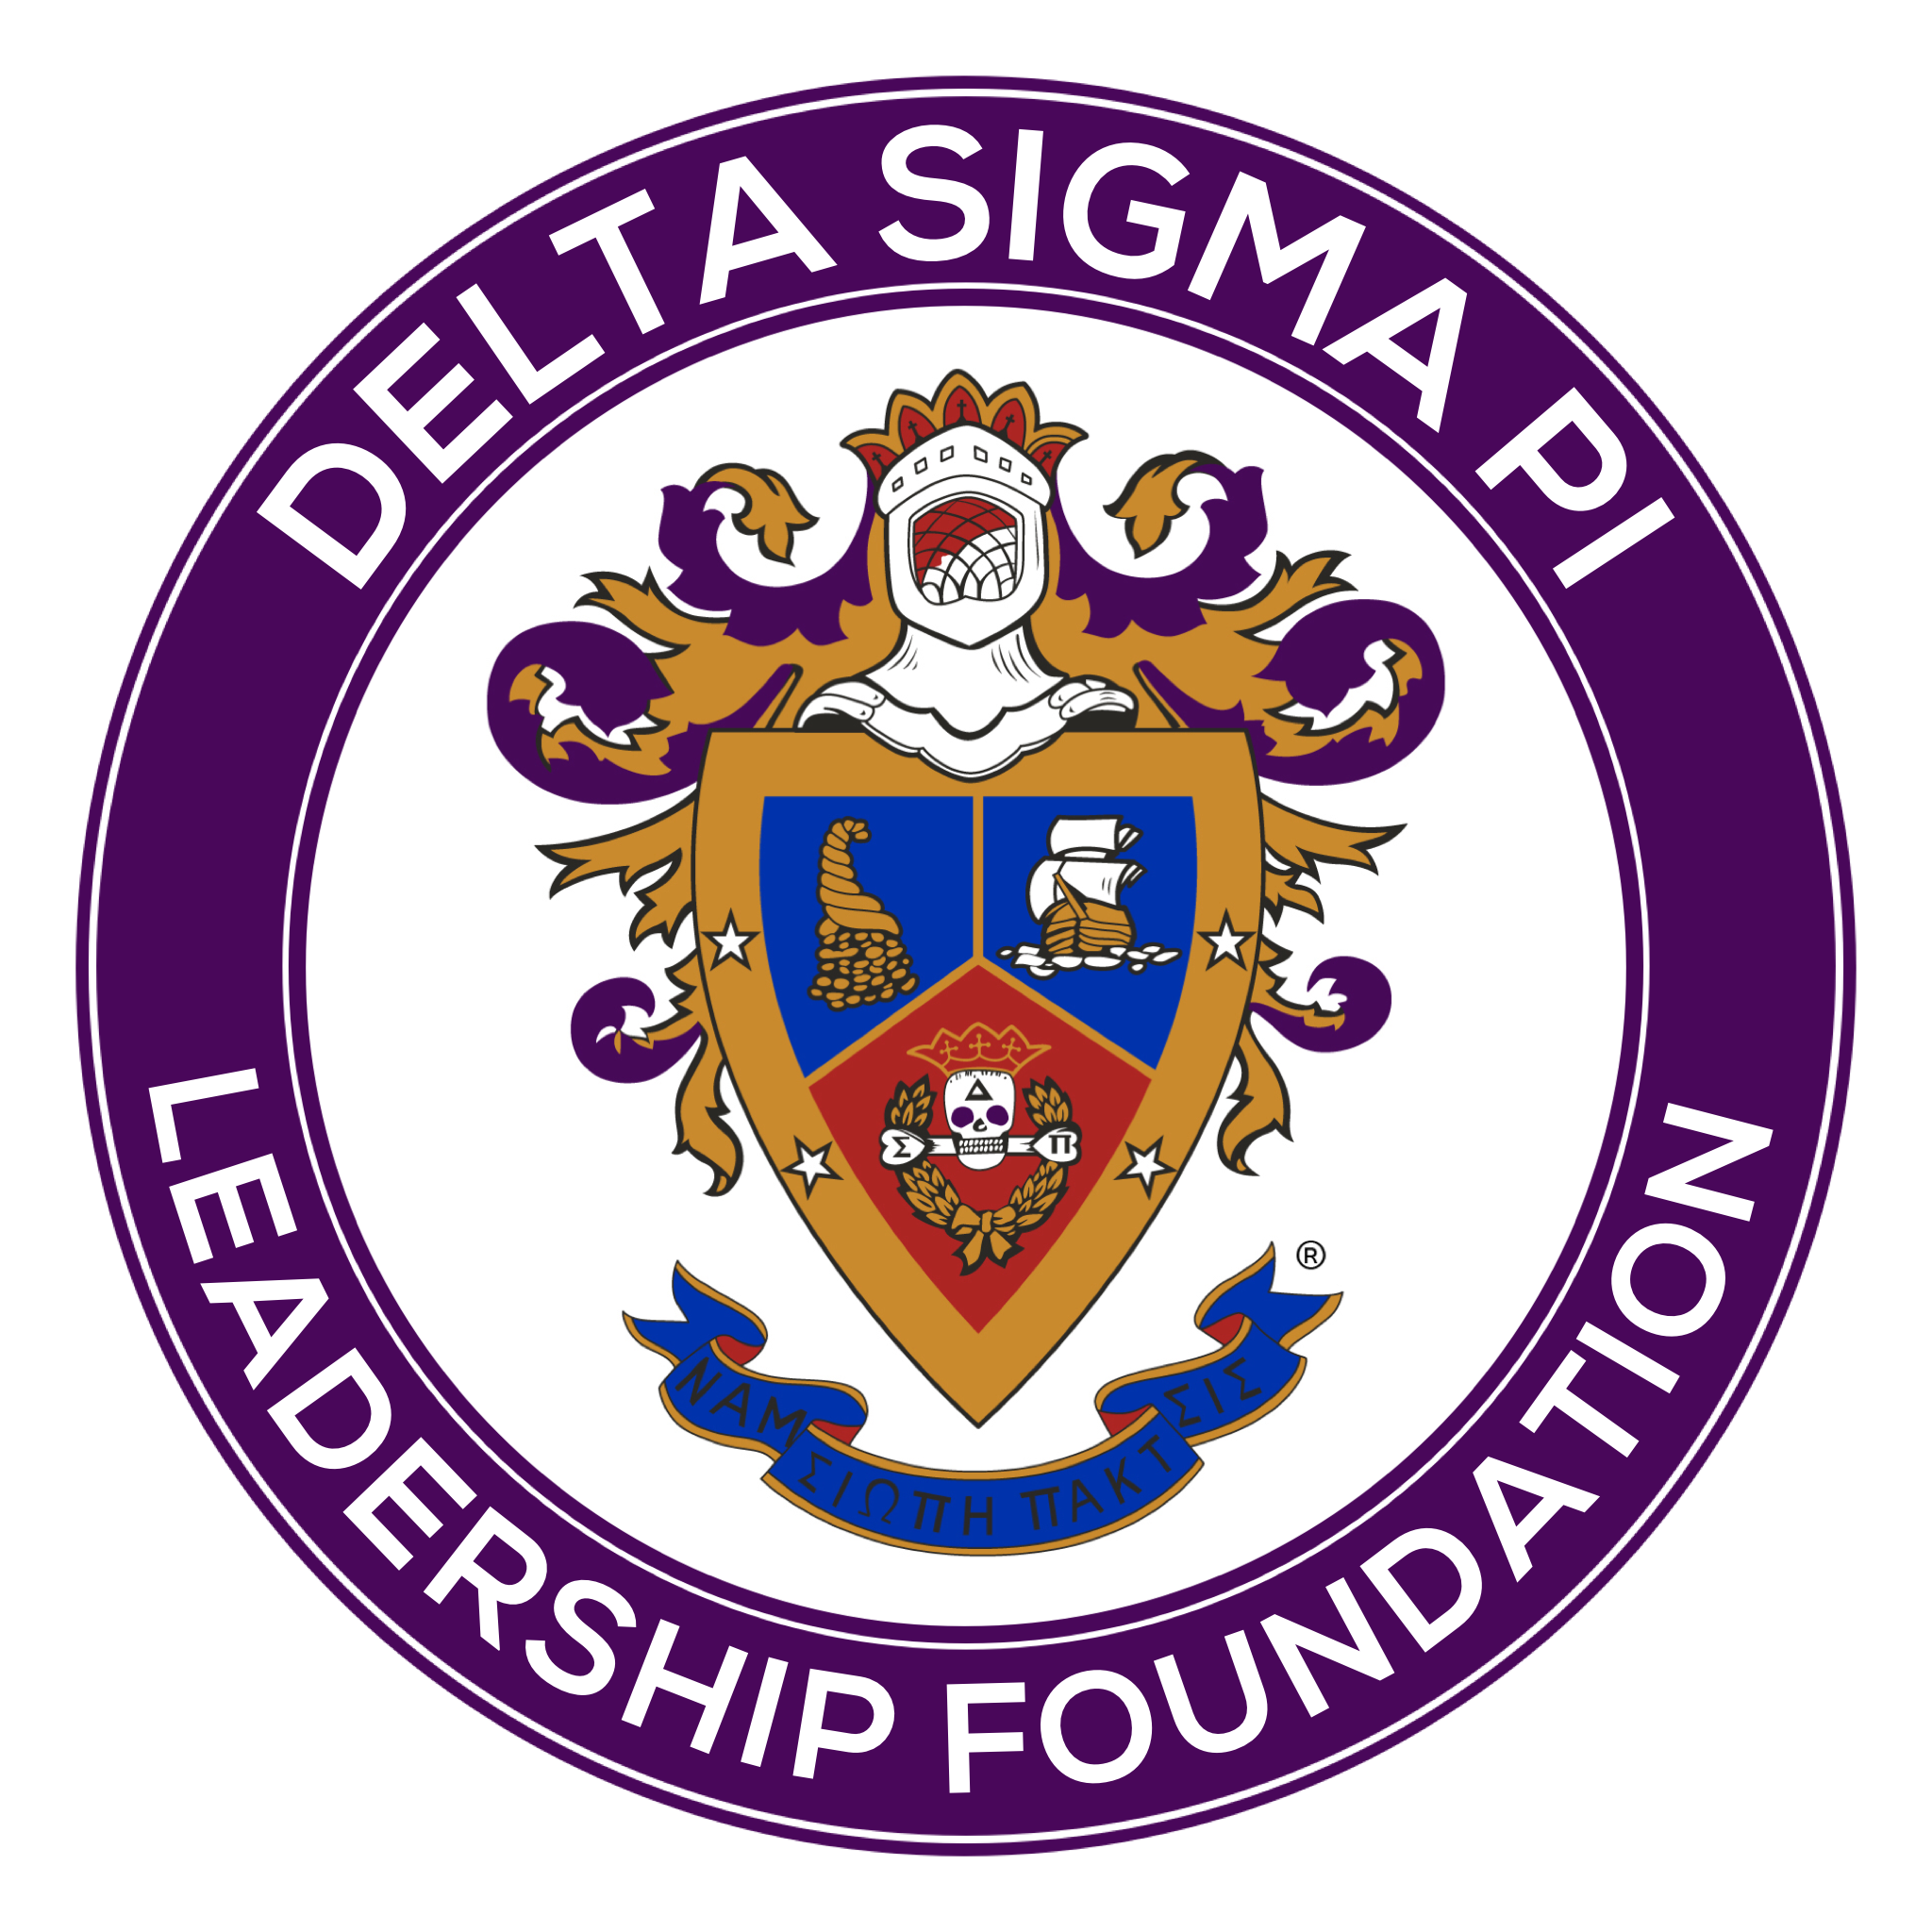 Leadership Foundation Seal - Full Color_310